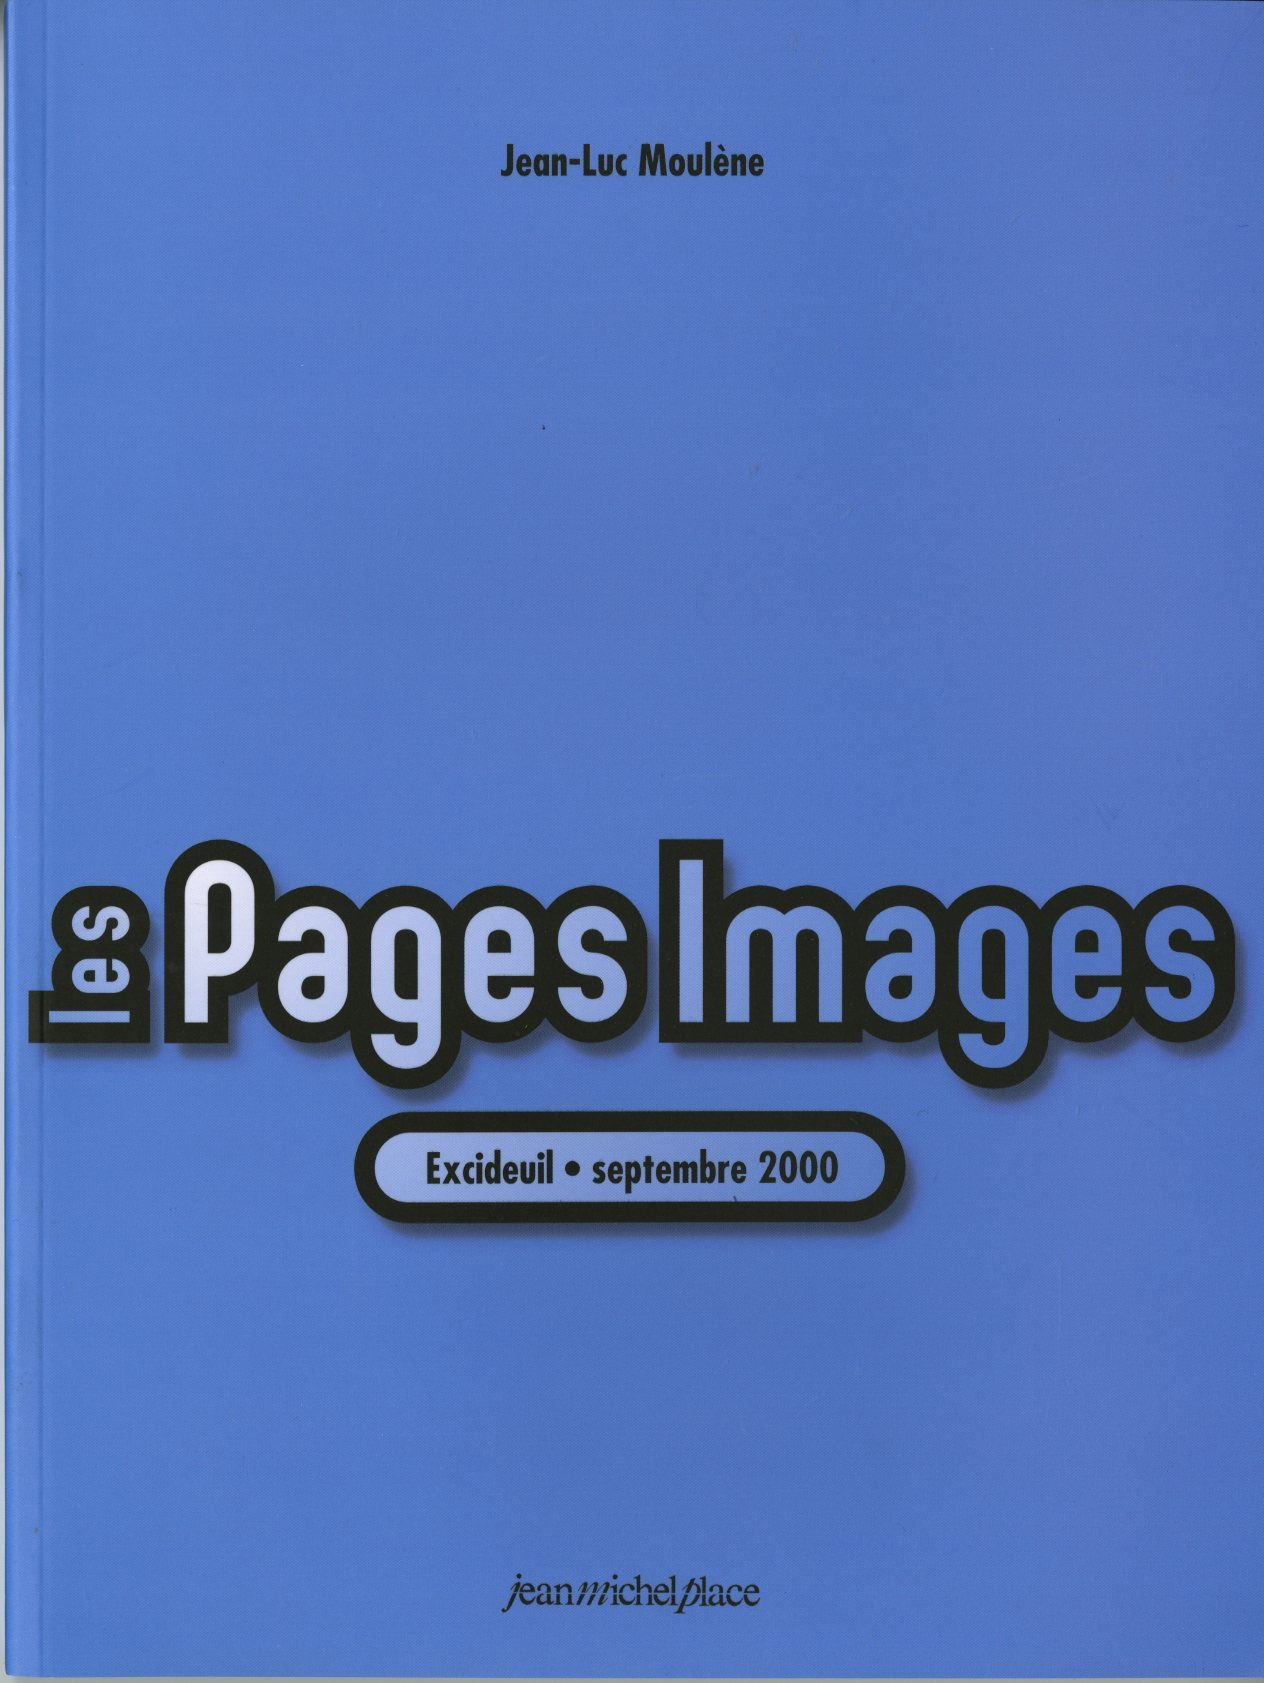 PAGES IMAGES EXCIDEUIL